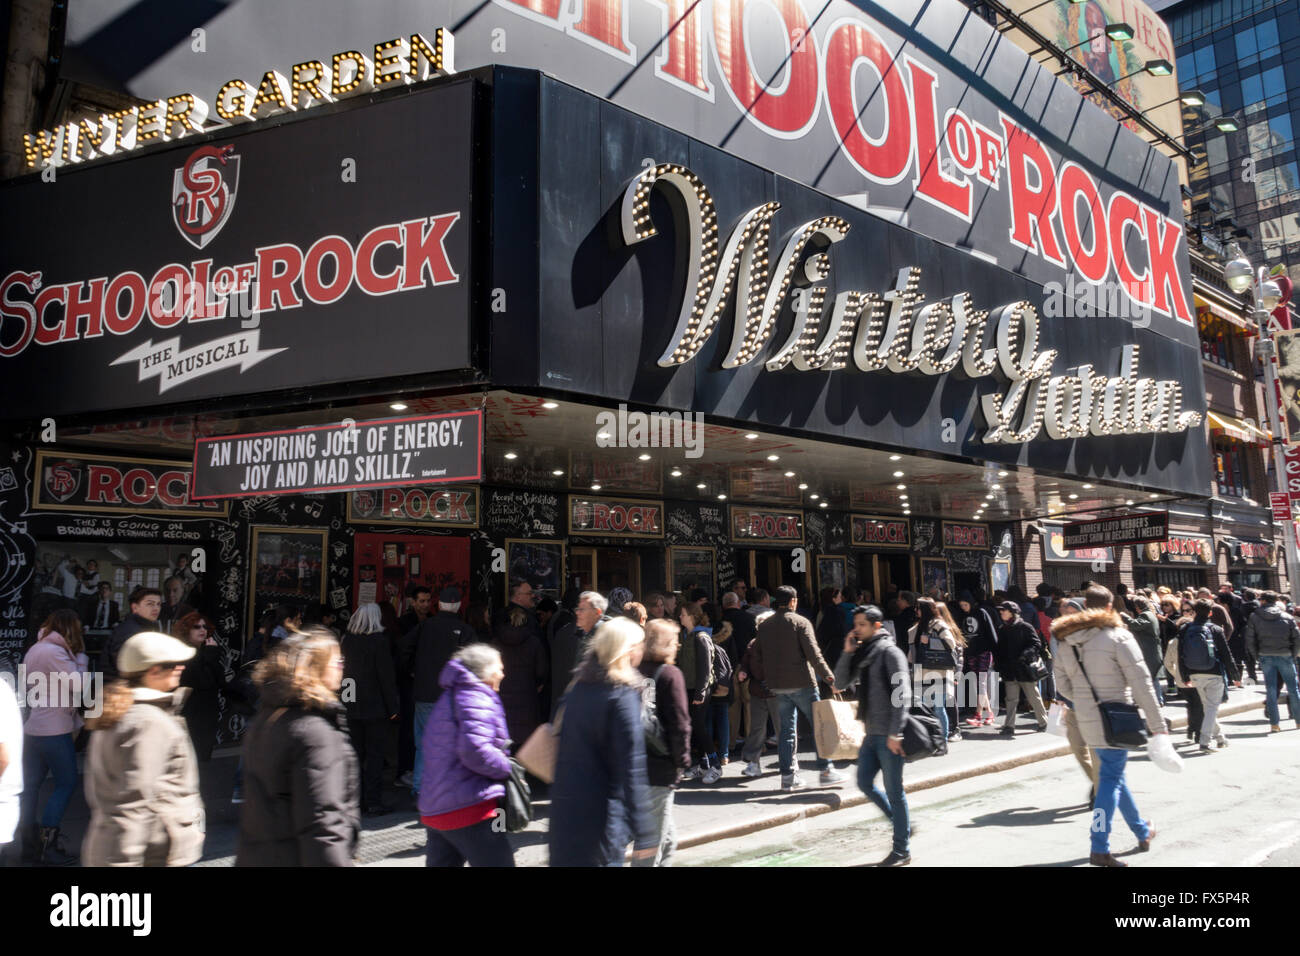 winter garden theater nyc - Winter Garden Theater Nyc